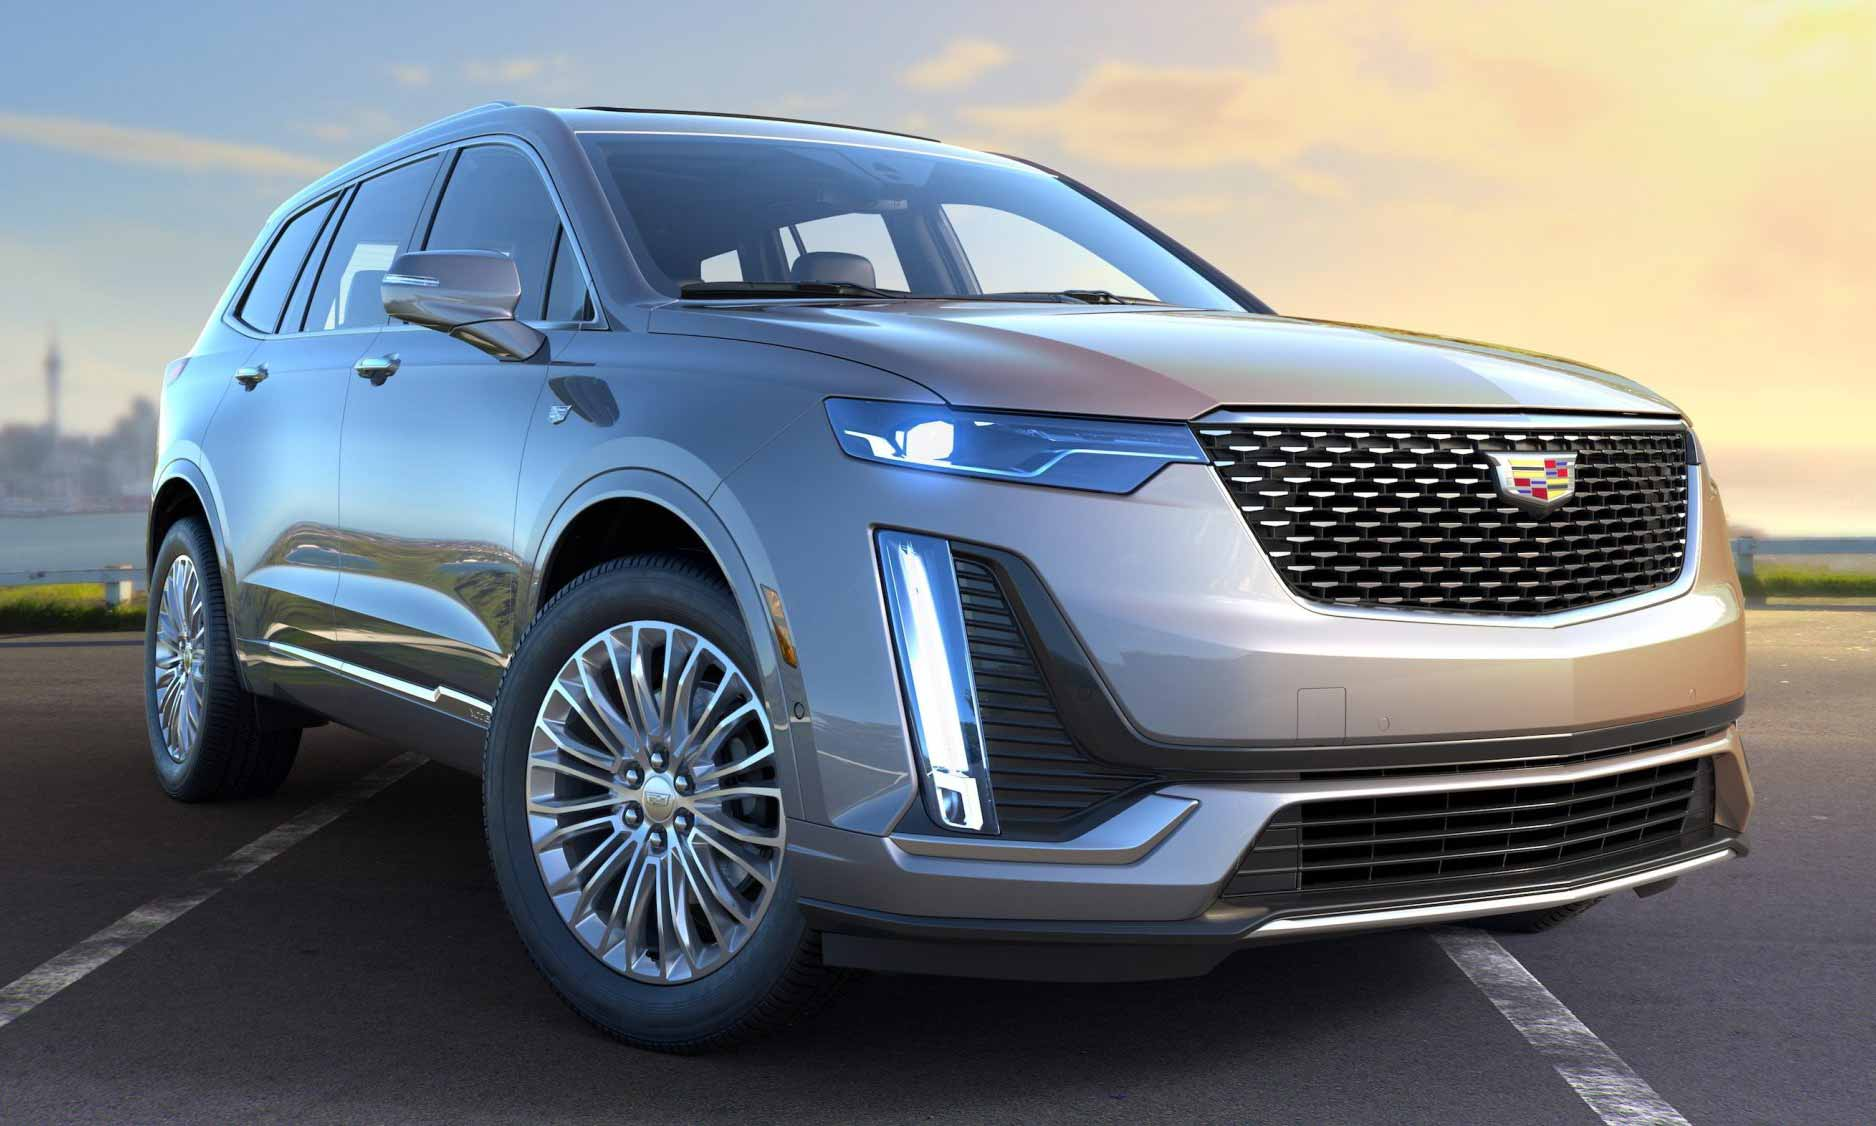 The virtual Cadillac is indistinguishable from a real one